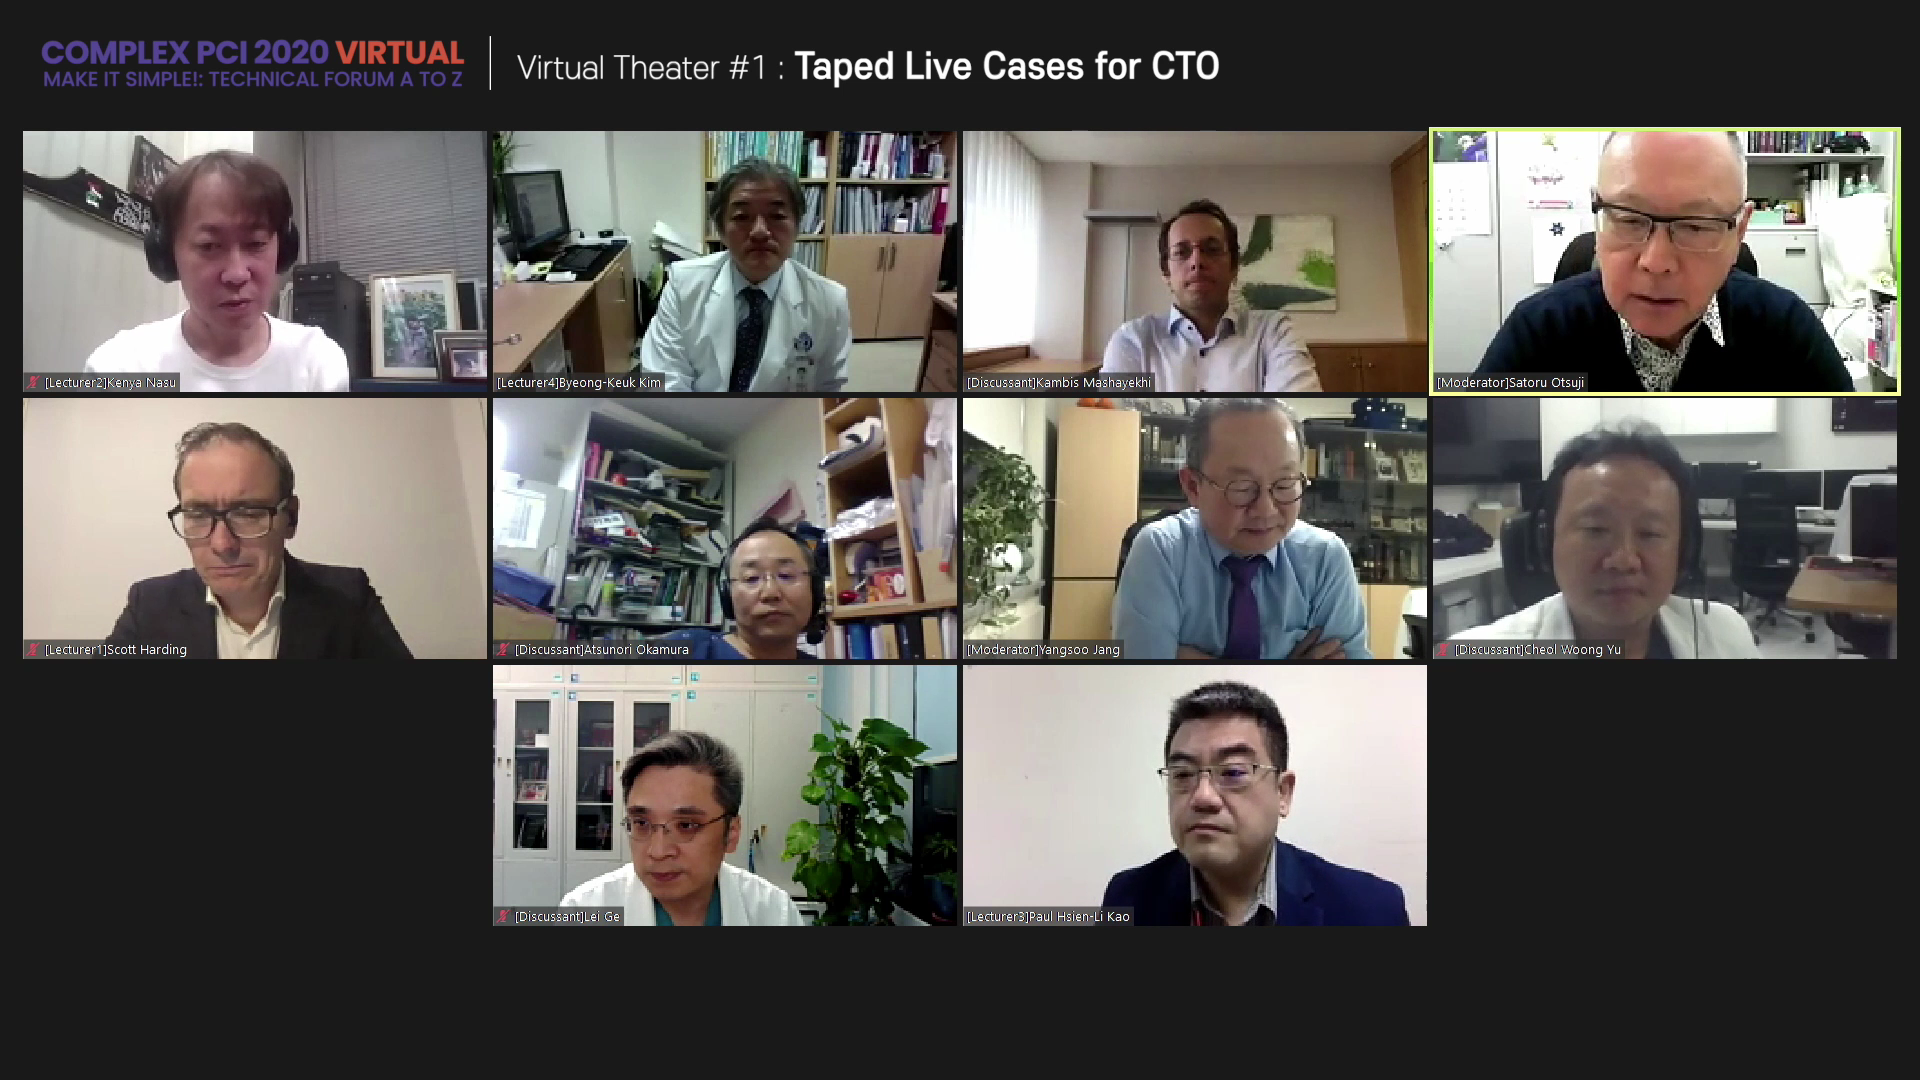 Virtual Theater #1: Taped Live Cases for CTO